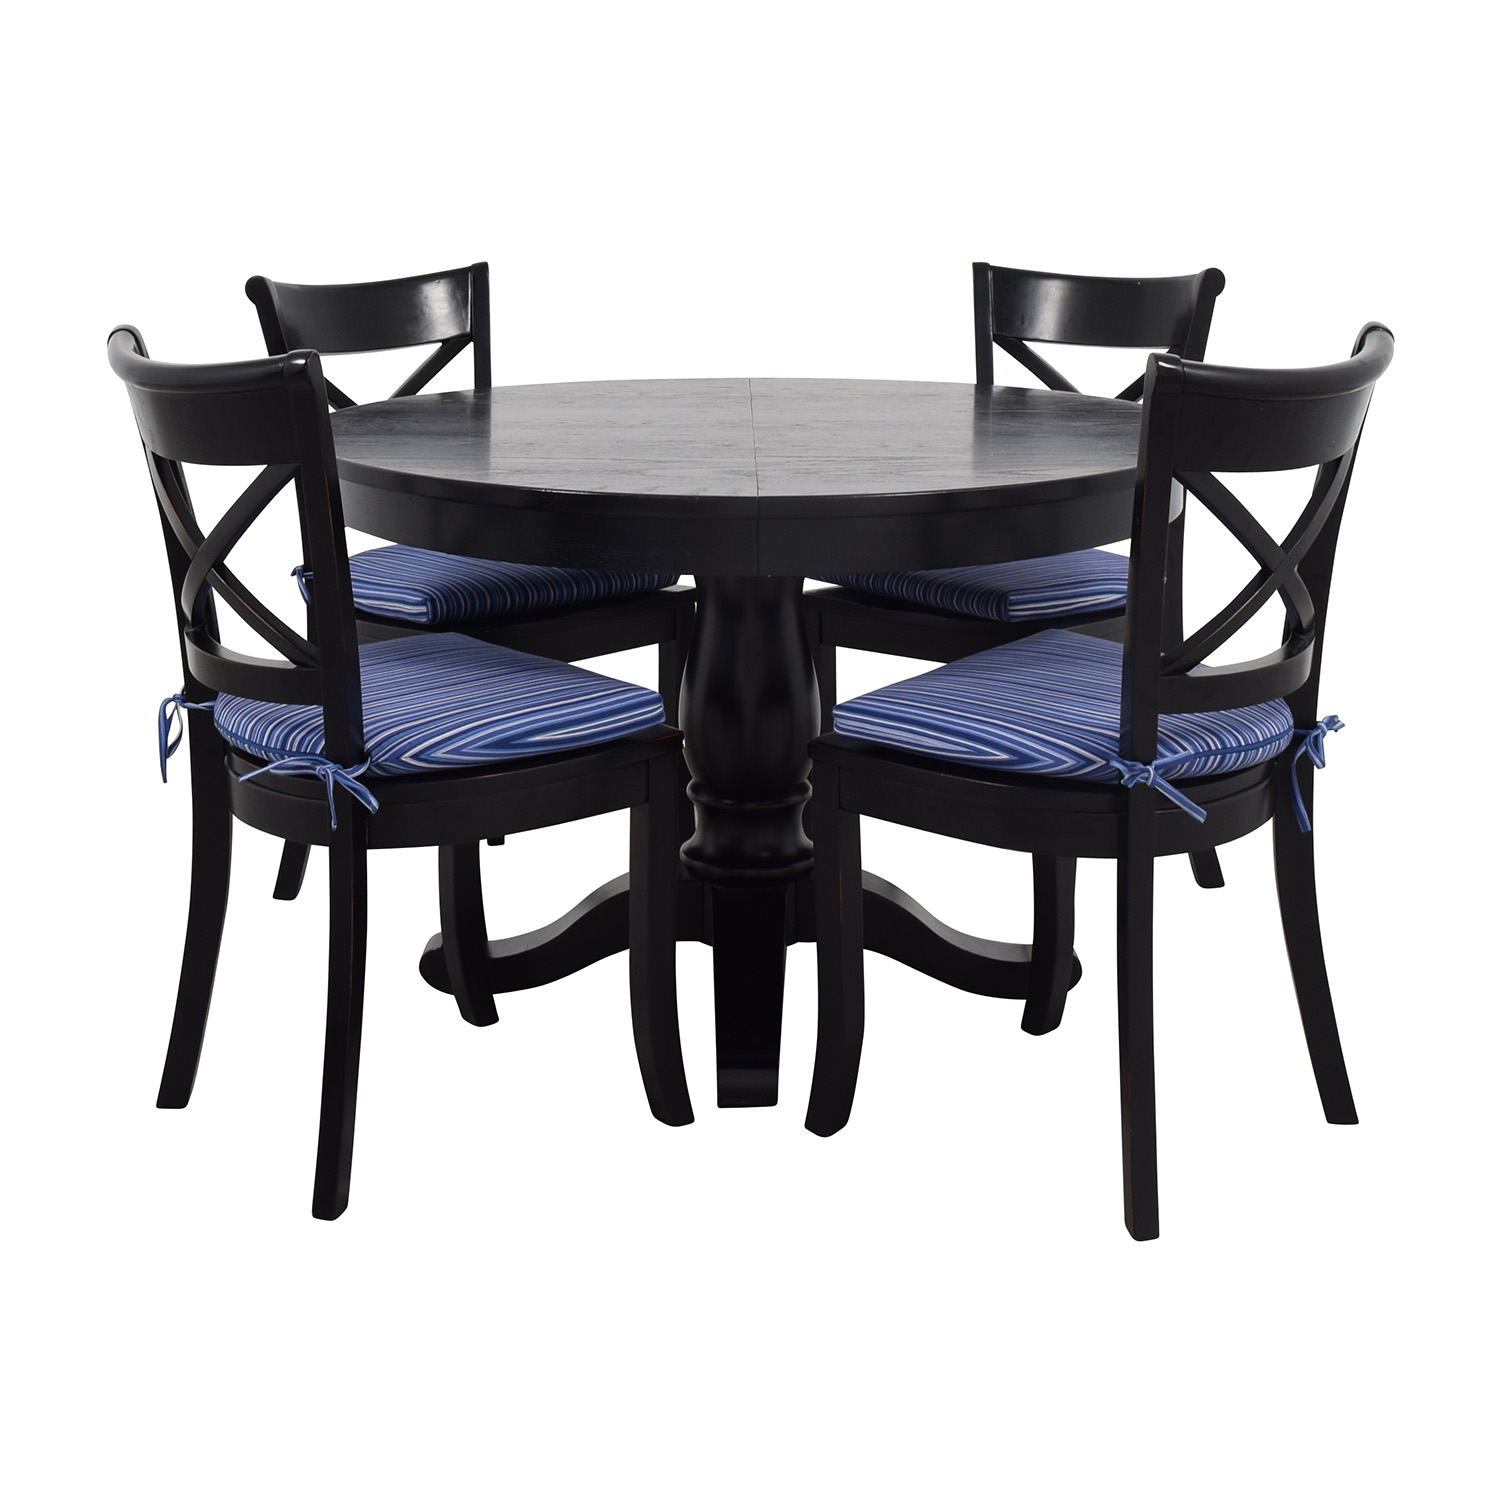 Crate & Barrel Crate & Barrel Table and Chairs second hand